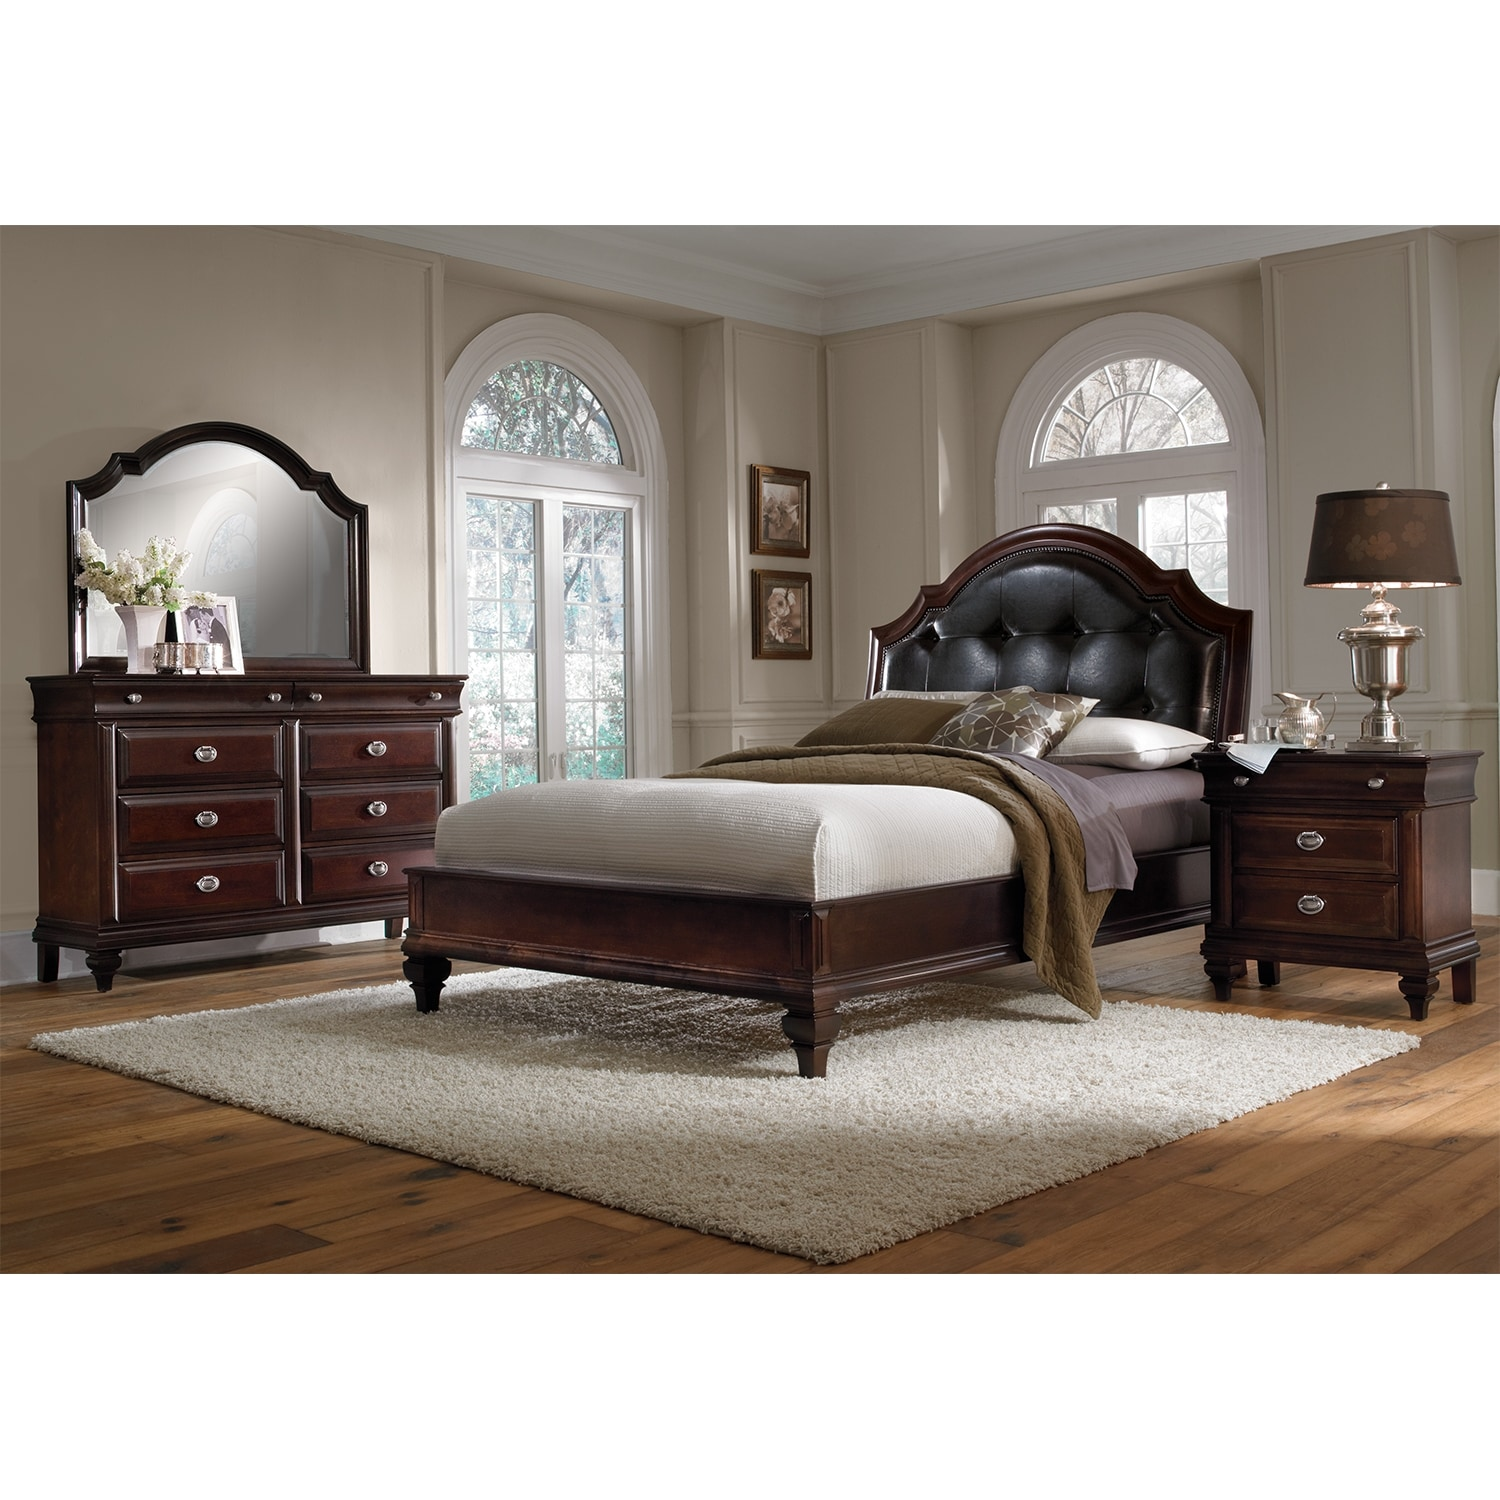 Manhattan 6 piece queen bedroom set cherry american signature furniture American home furniture bedroom sets